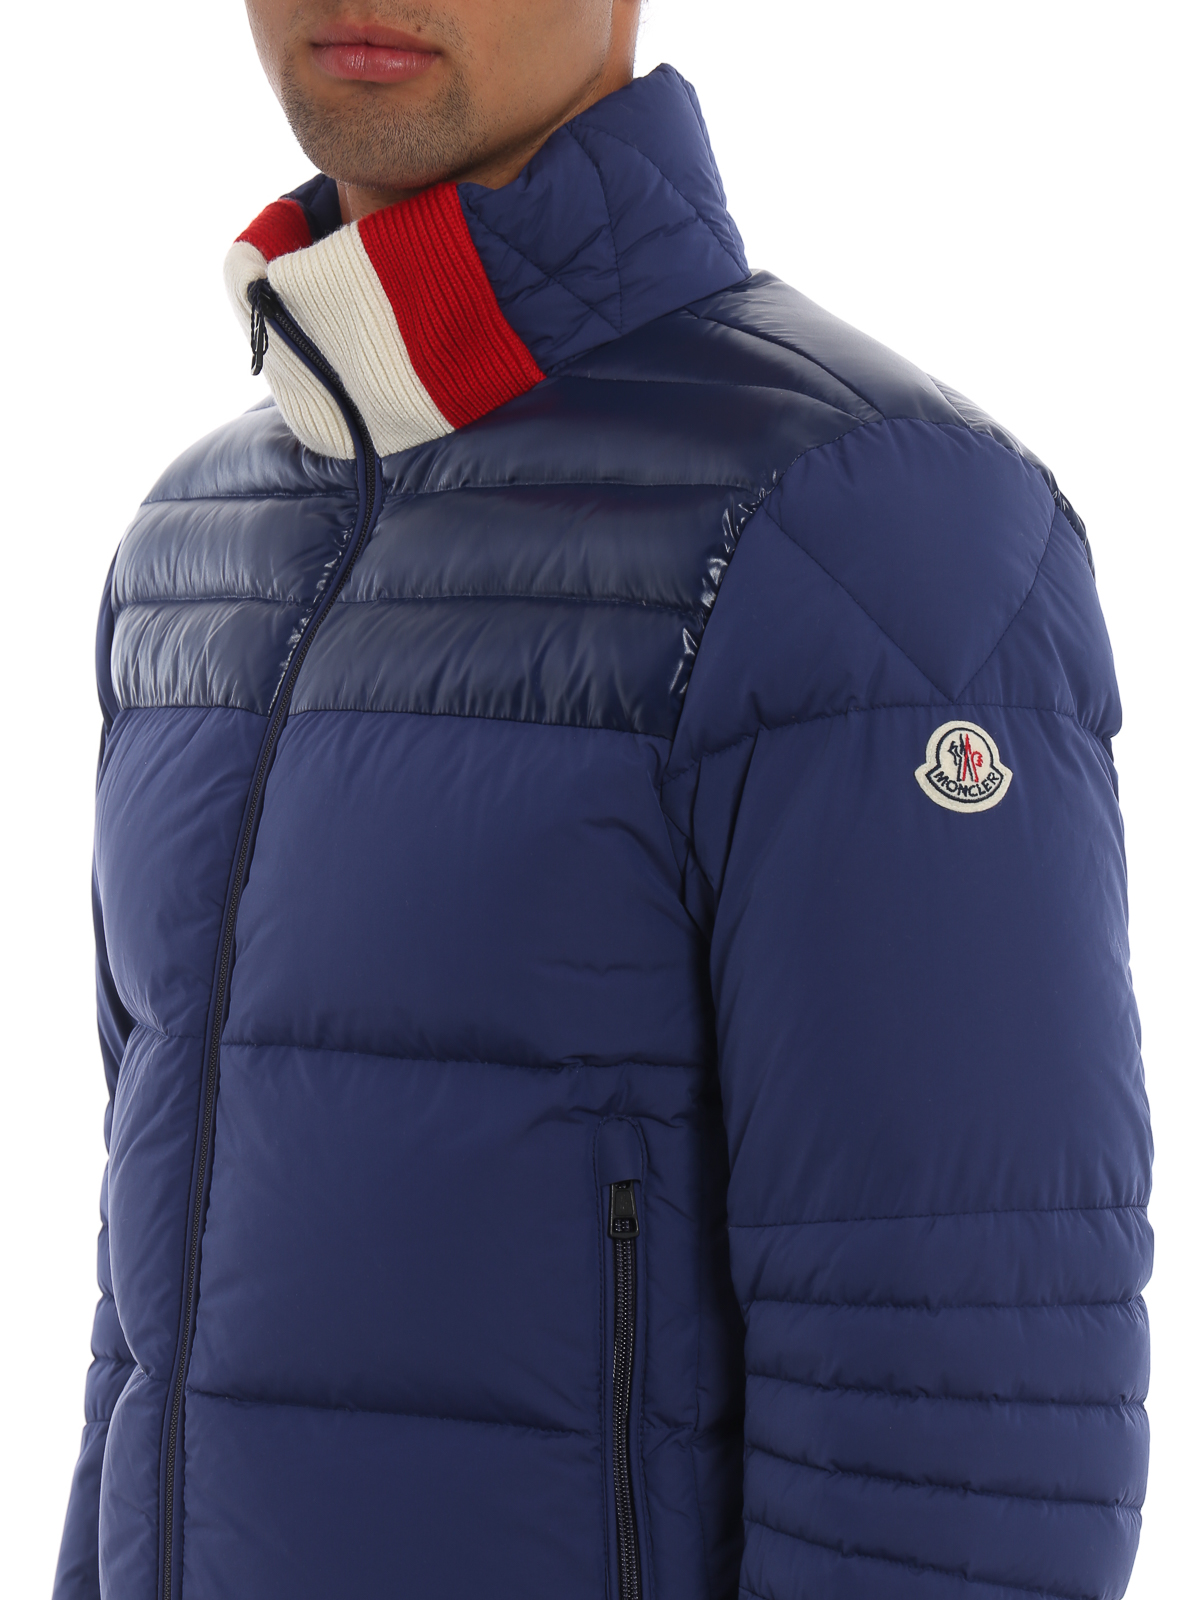 MONCLER buy online Bassias alpine style puffer jacket